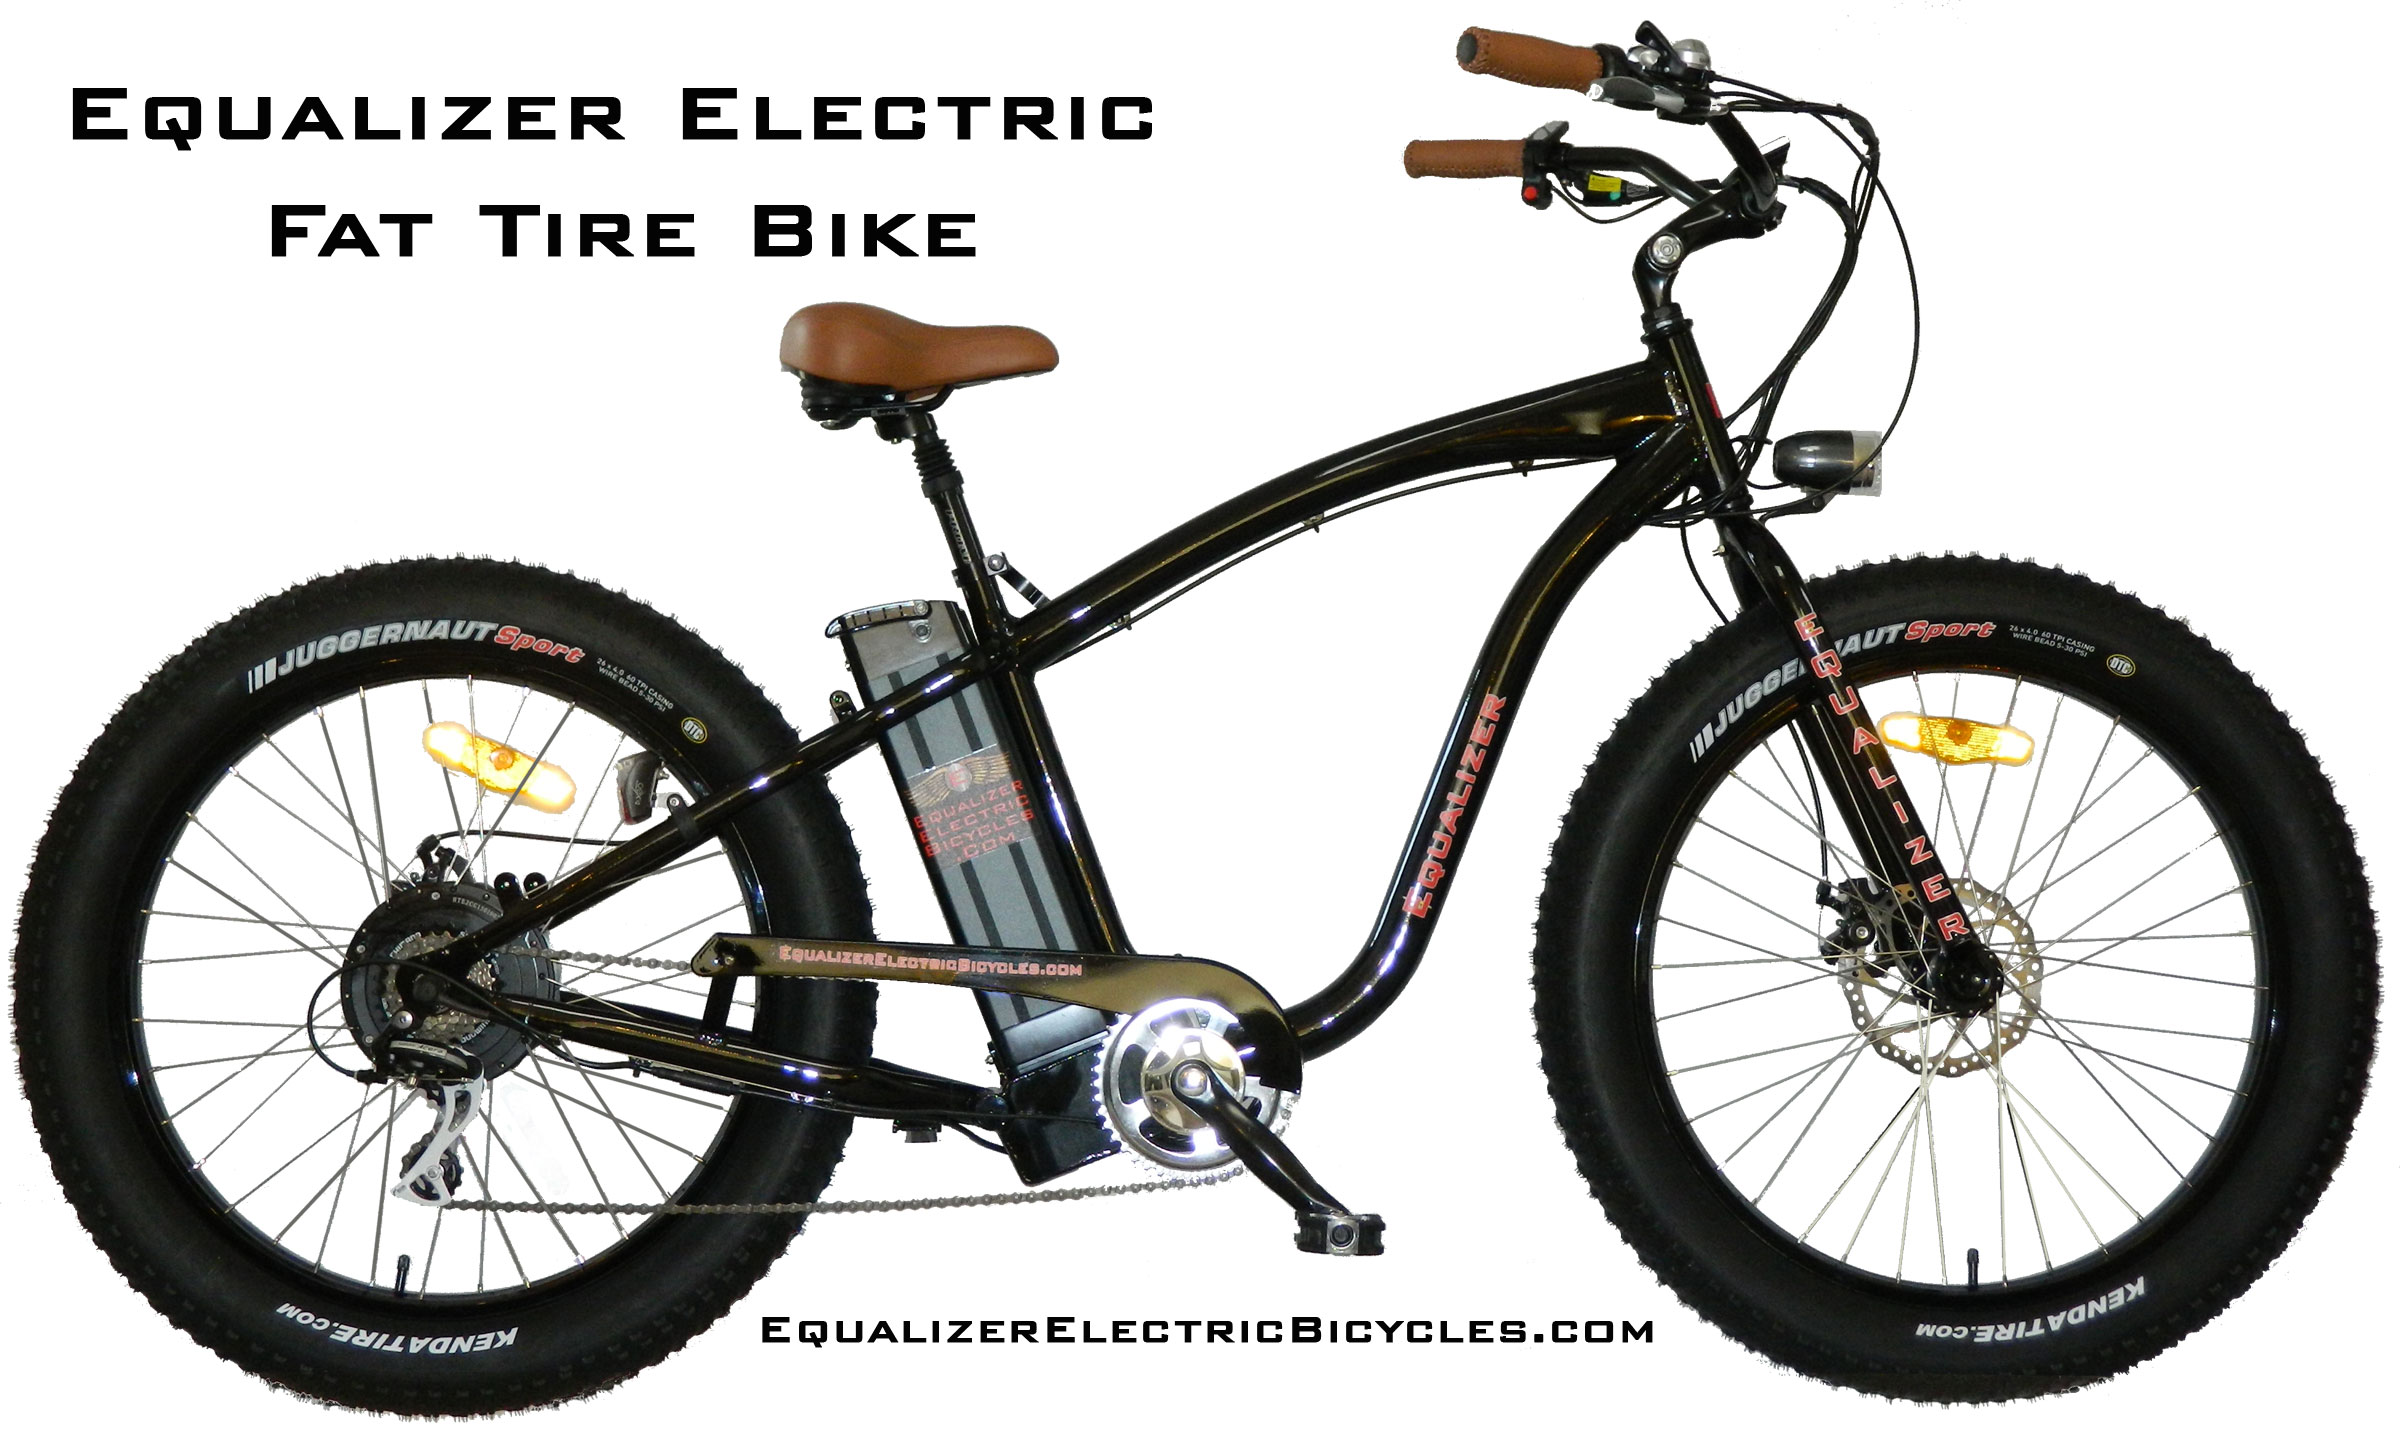 Beach Bikes With Fat Tires Used For Sale Electric Fat Tire Bike Beach